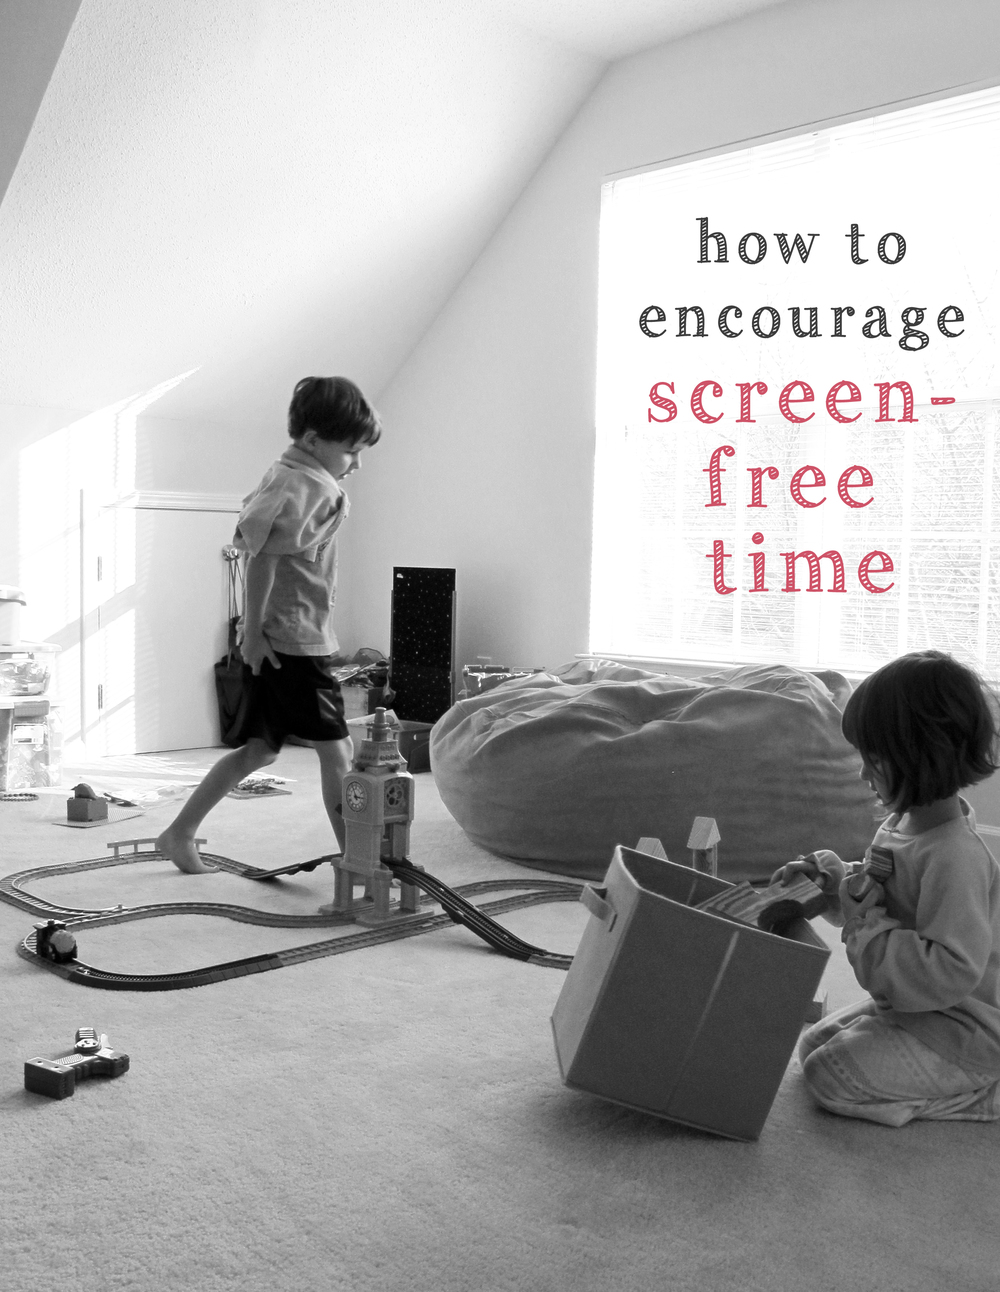 how to encourage screen-free time